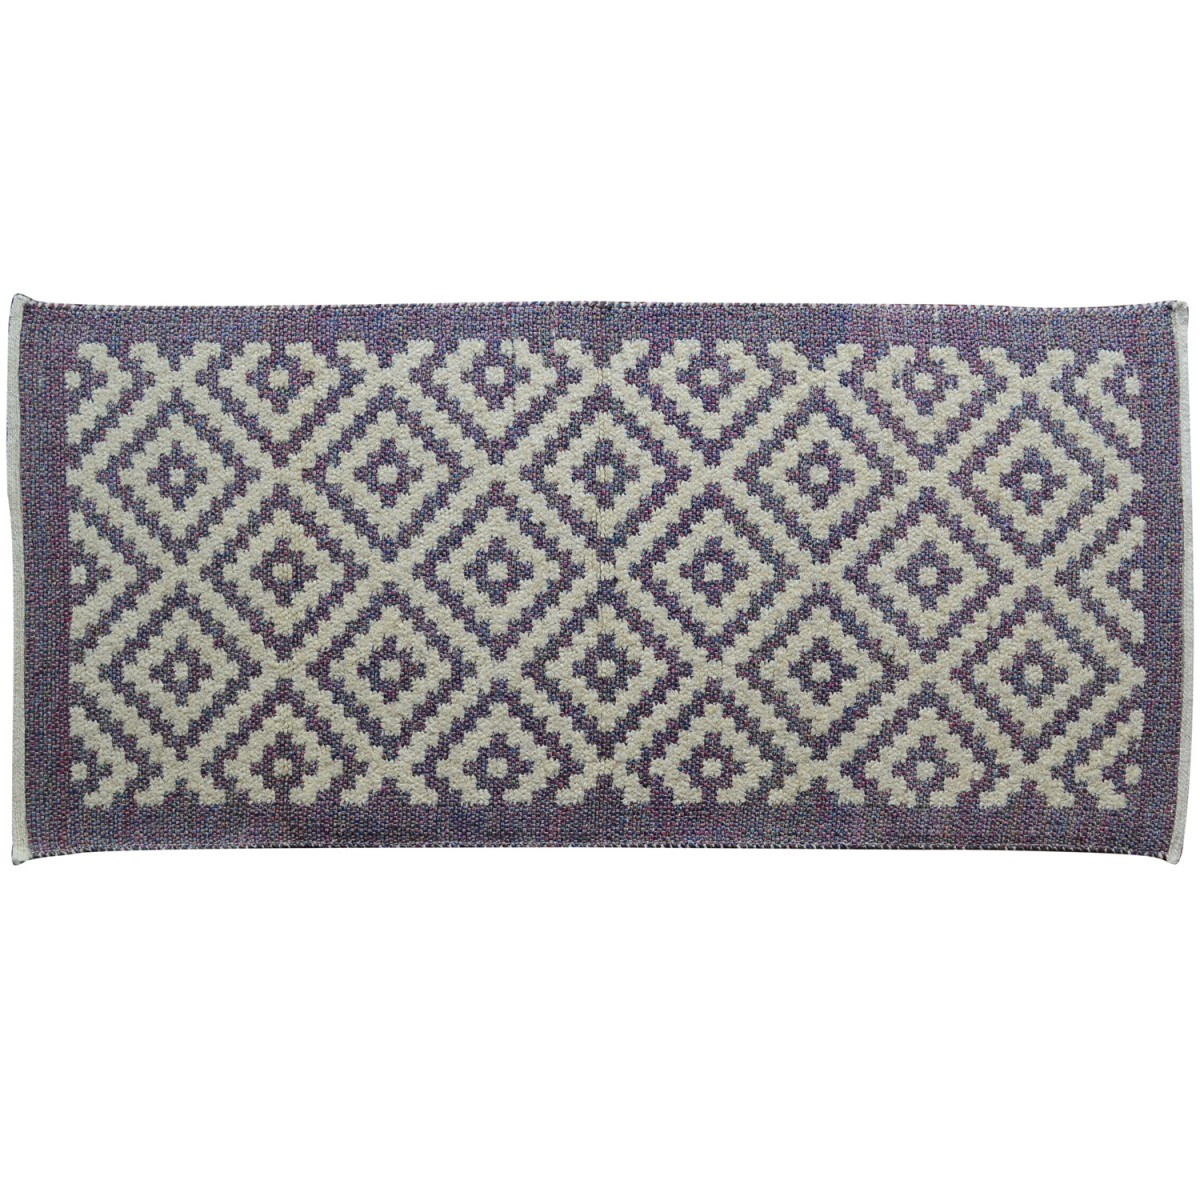 Rhombus_Two-Sided_Rug-Multicolor-1